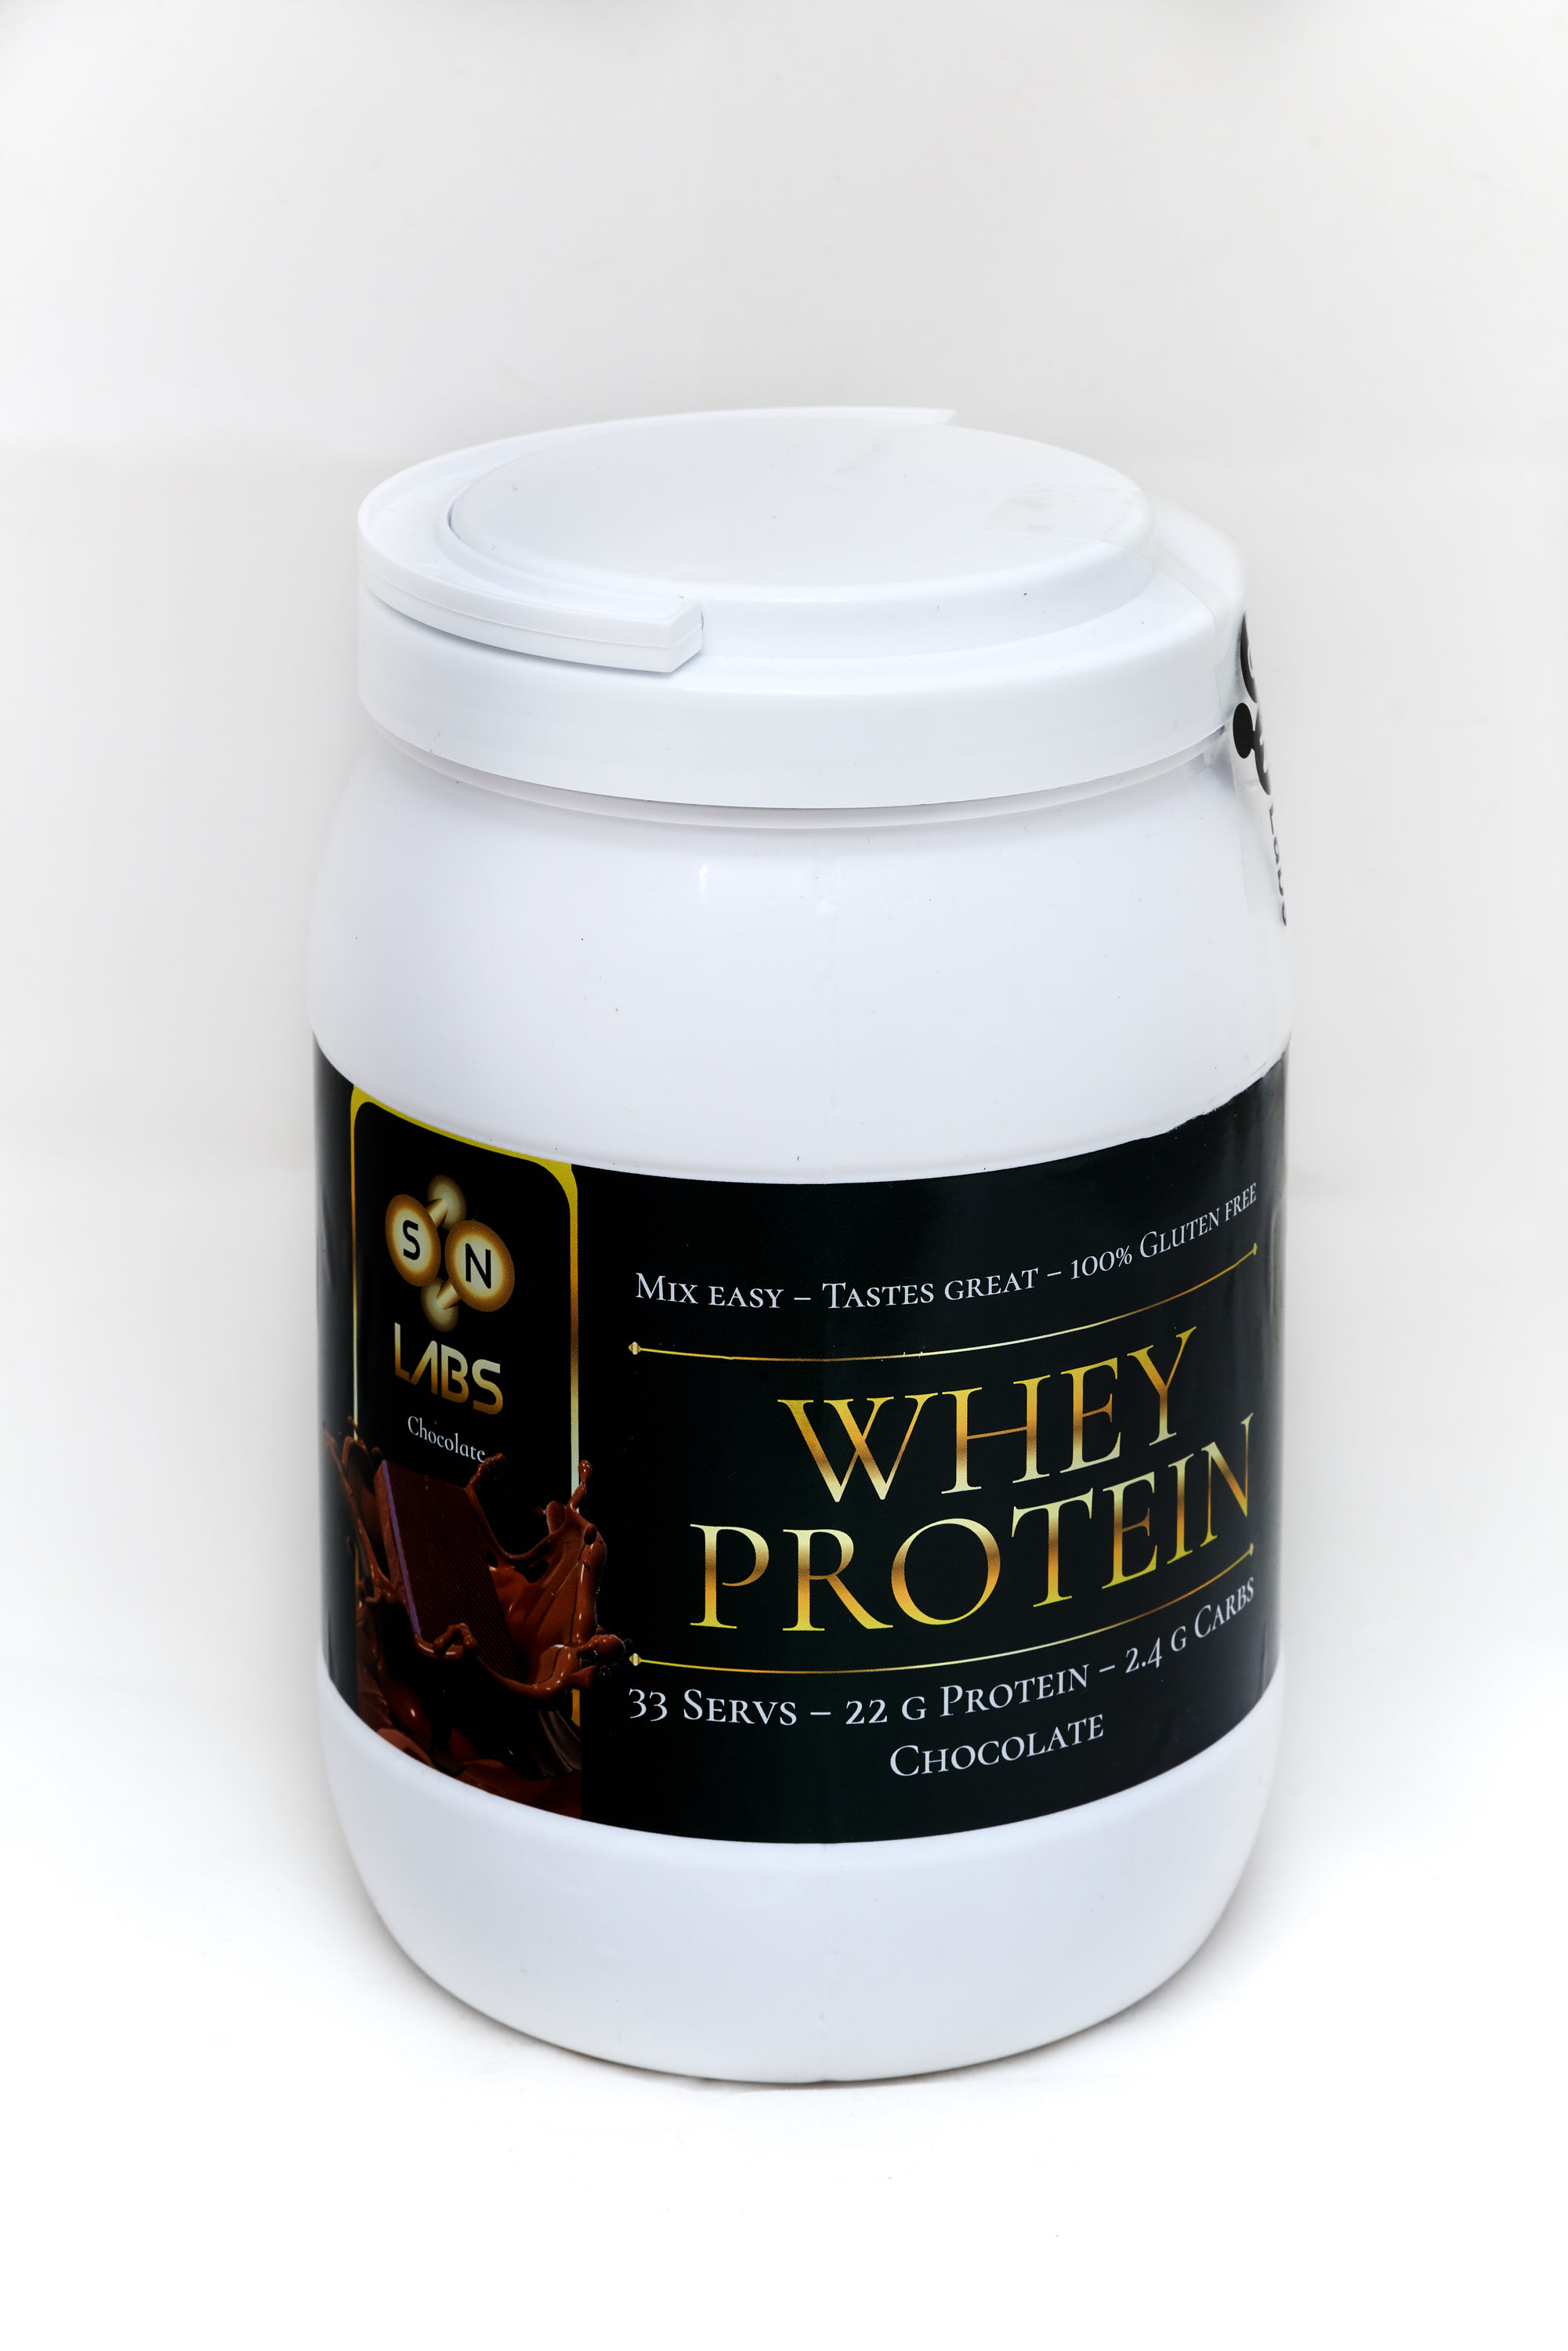 SNLabs Whey Protein